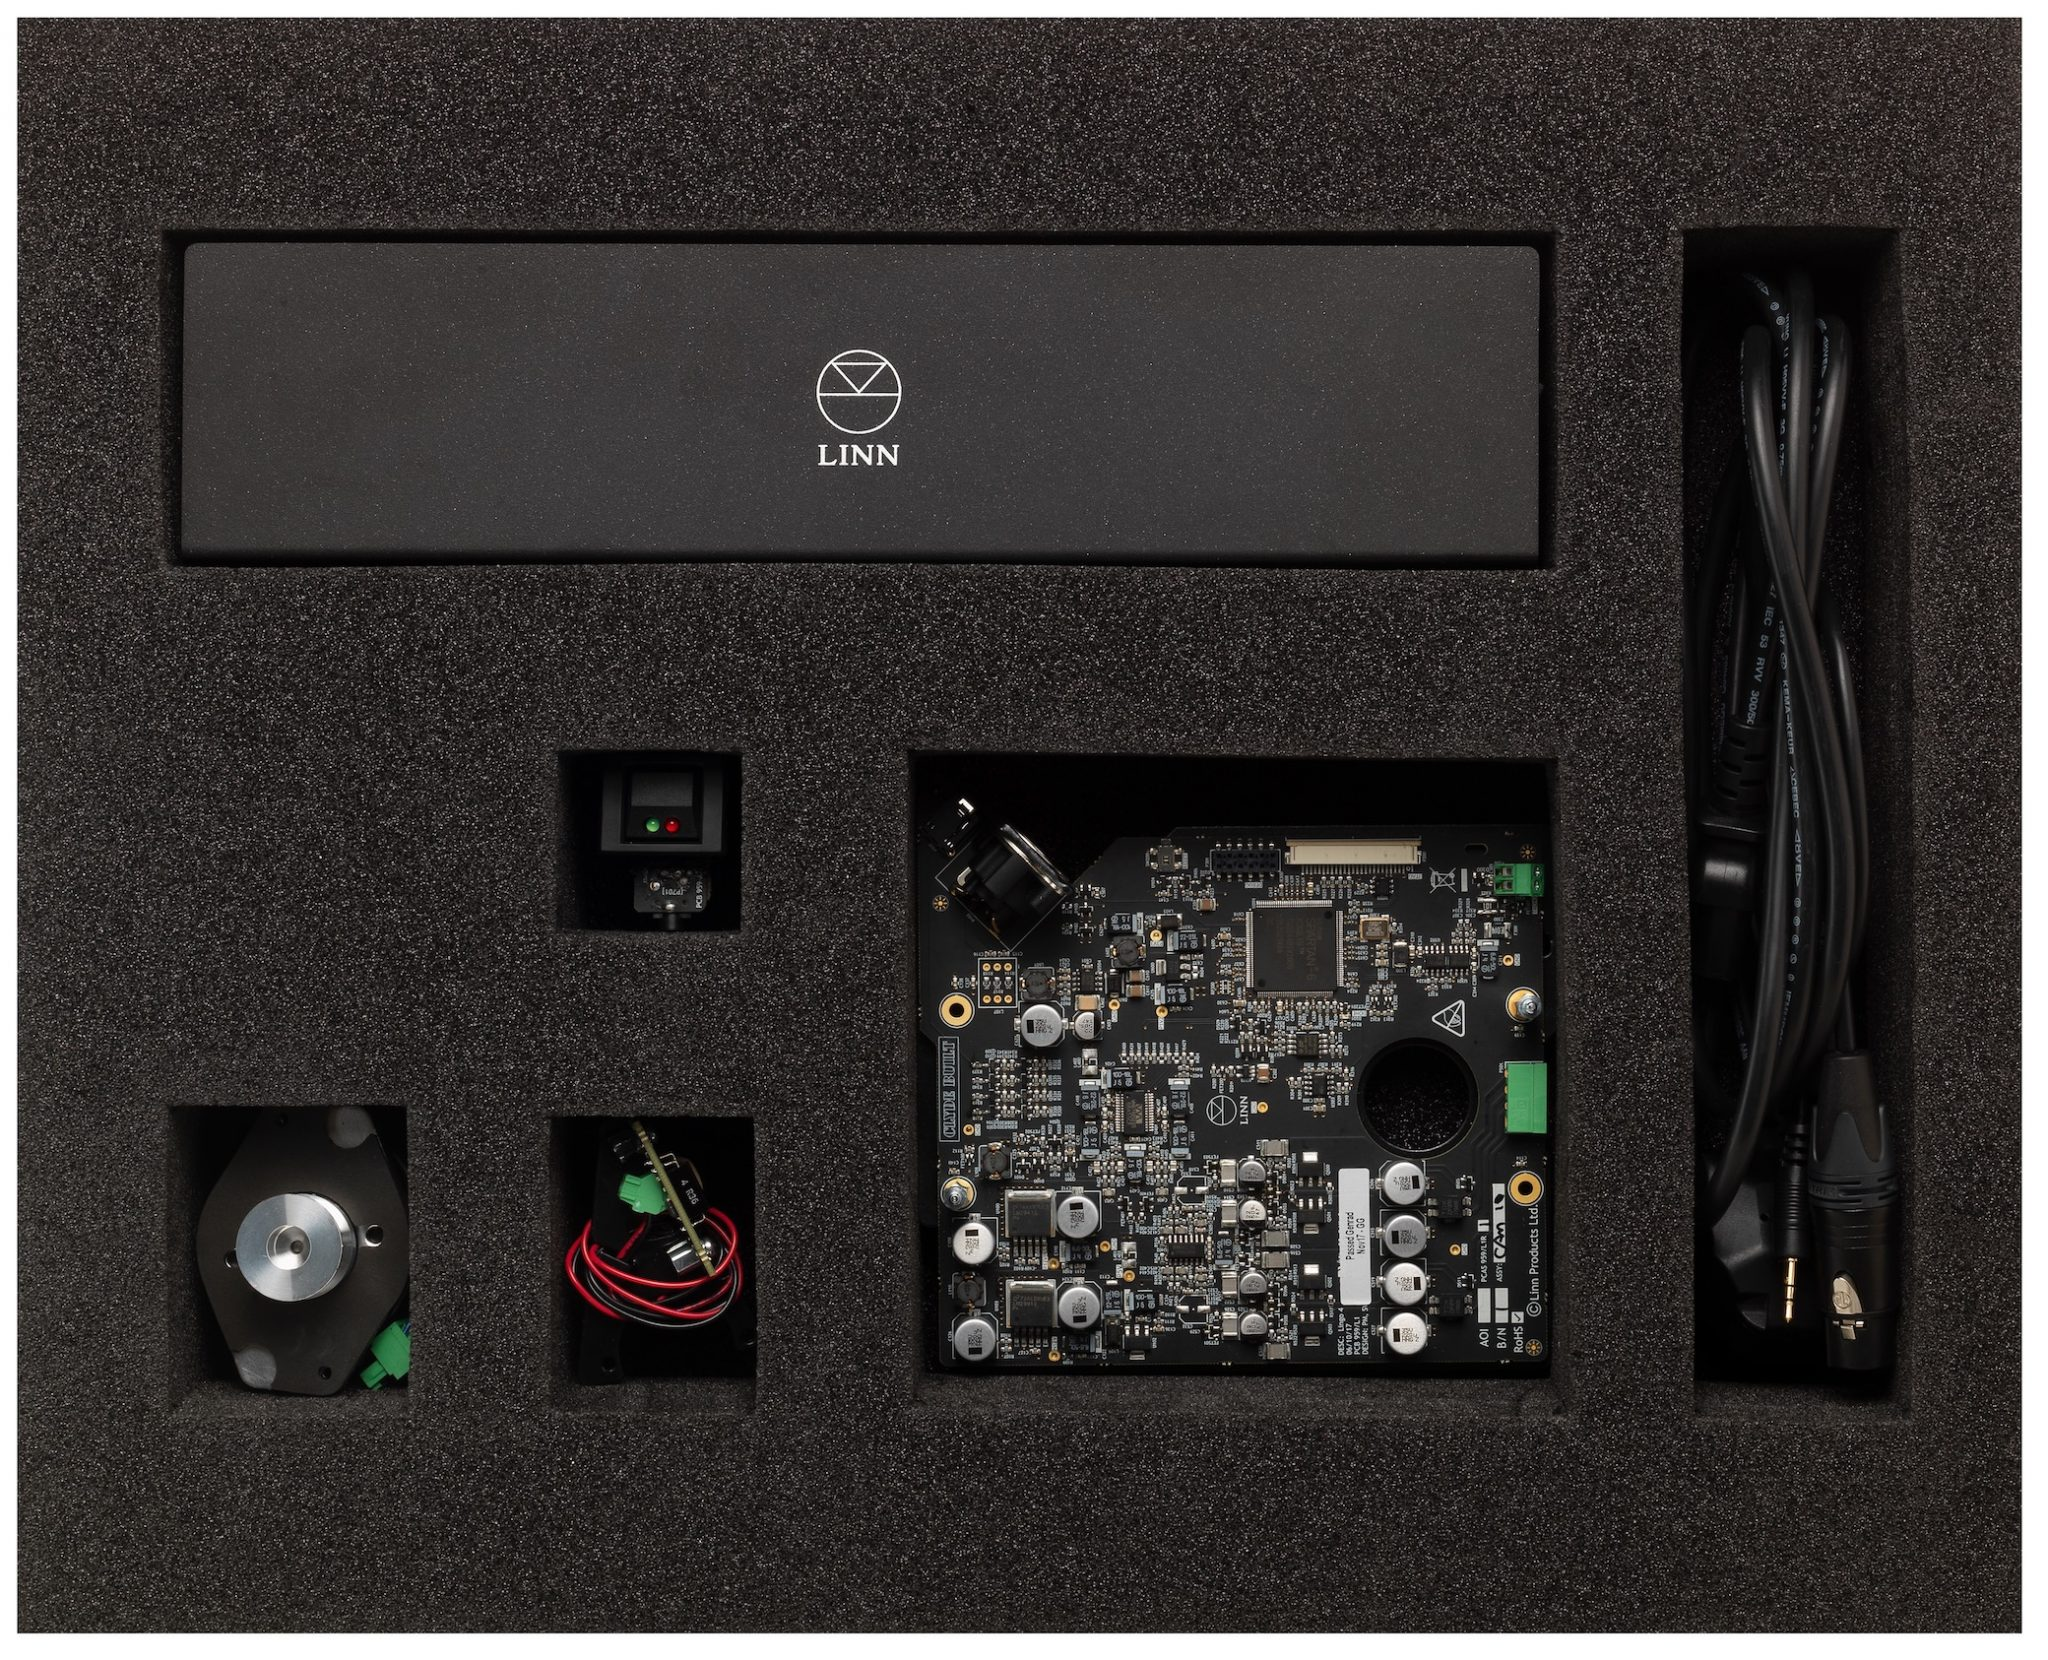 Linn's Sondek LP12 Upgrades: Urika II and Lingo